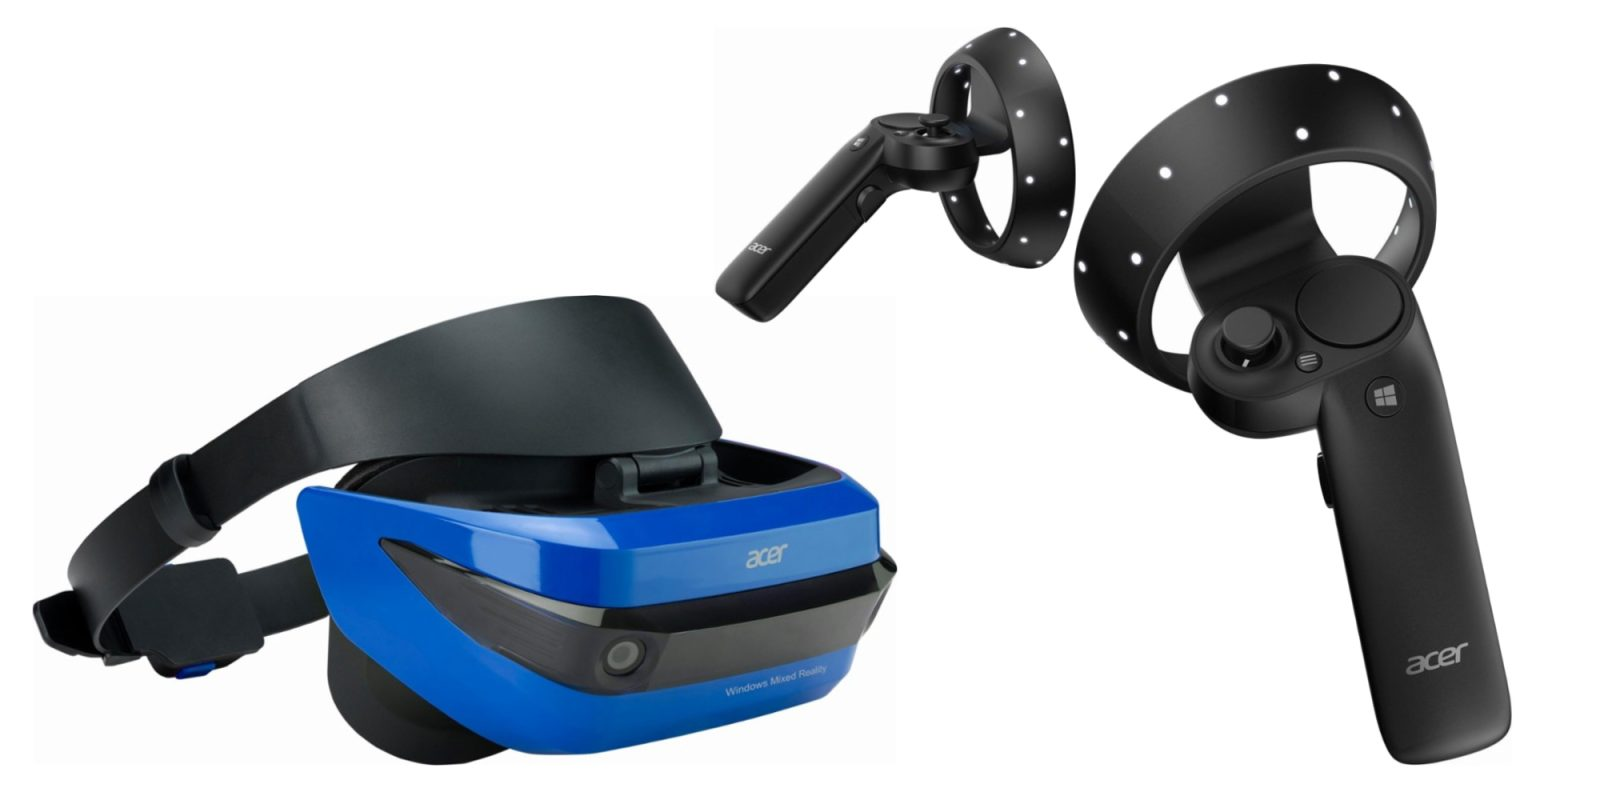 Acer's Mixed Reality Headset drops to $230 shipped, today only (Reg. $380)